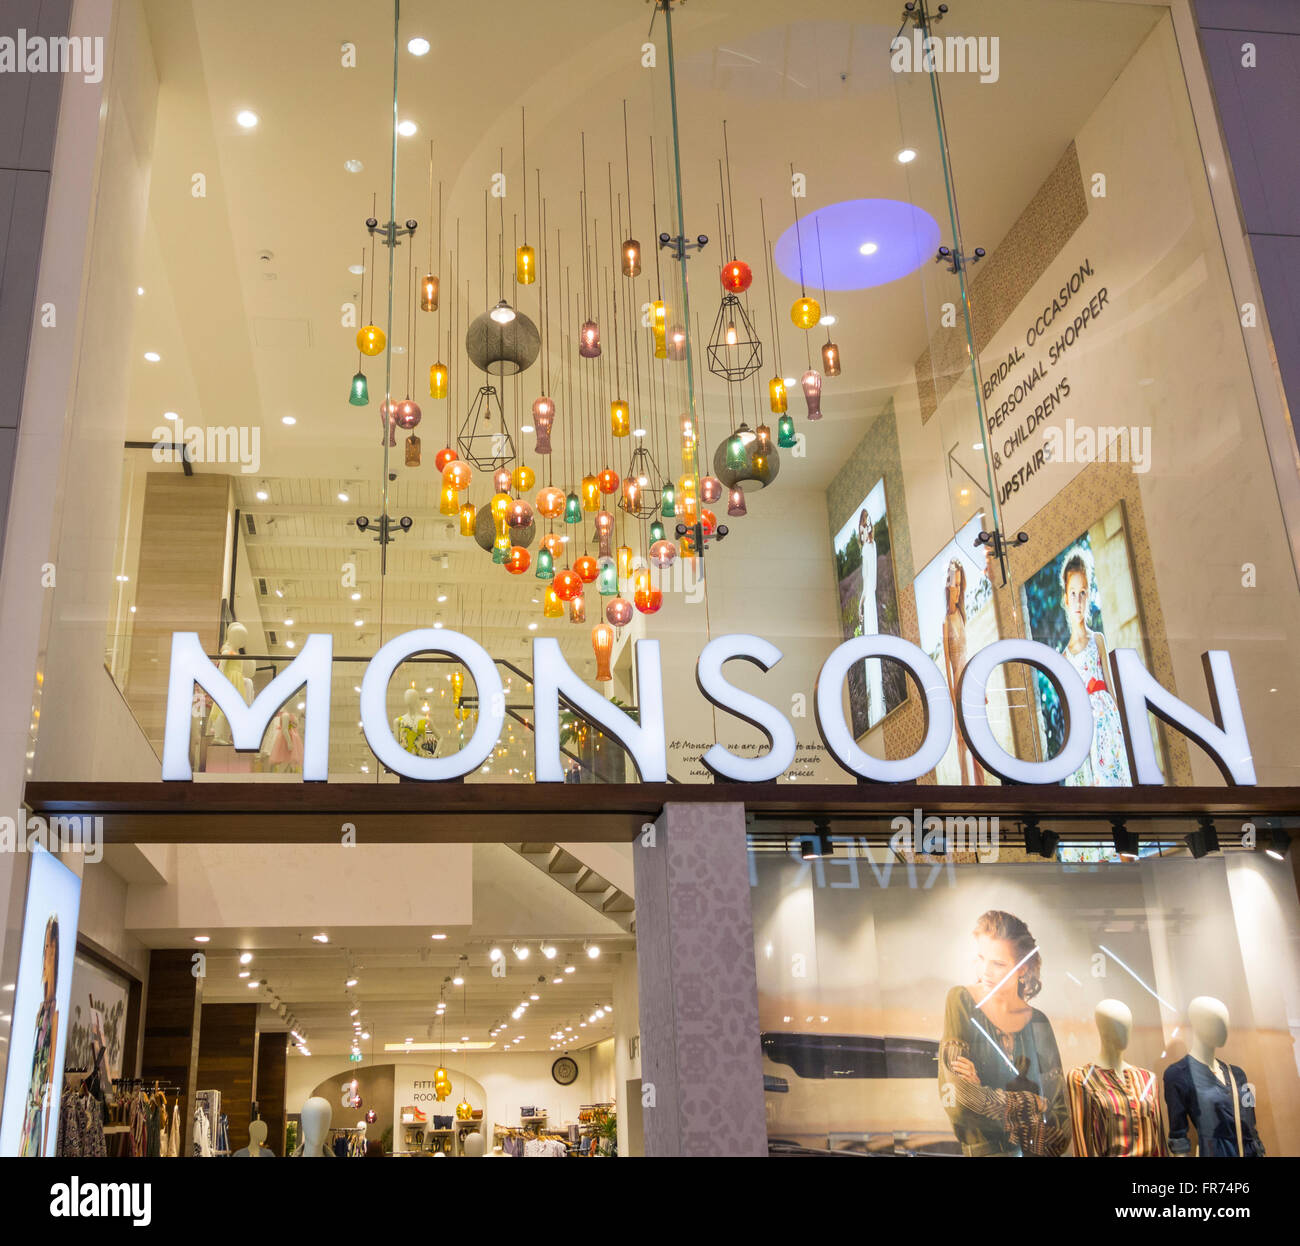 The Monsoon clothing range is an extensive one, incorporating a superb collection of clothing items, meaning you are sure to find something to suit your style, no matter if you are looking for the perfect party dress, a top, an item of knitwear or a piece of jewellery.